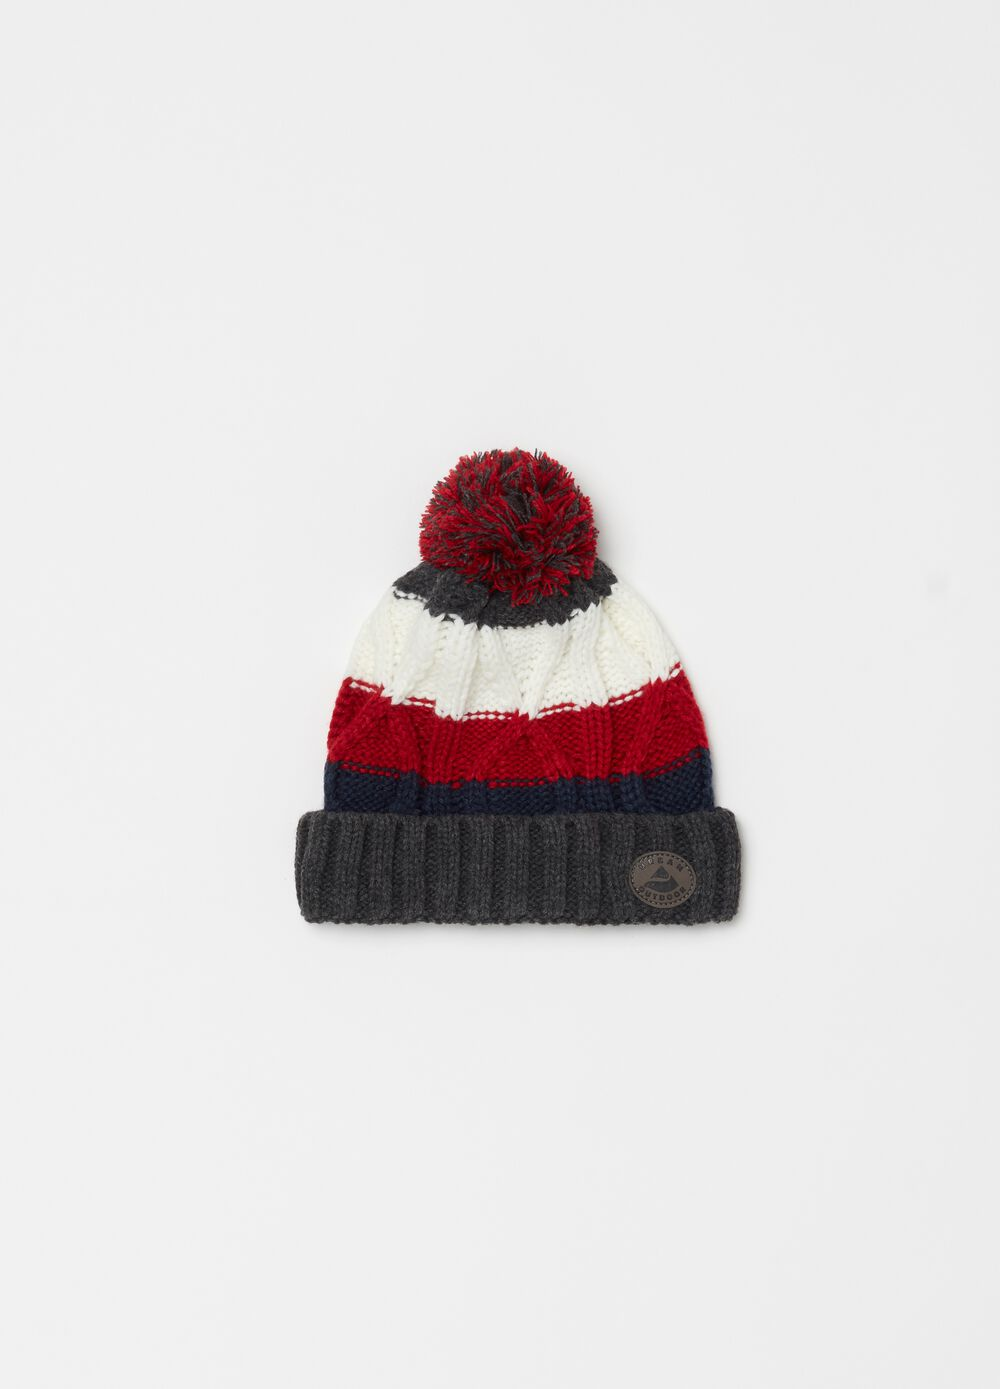 Knitted hat with braided striped weave